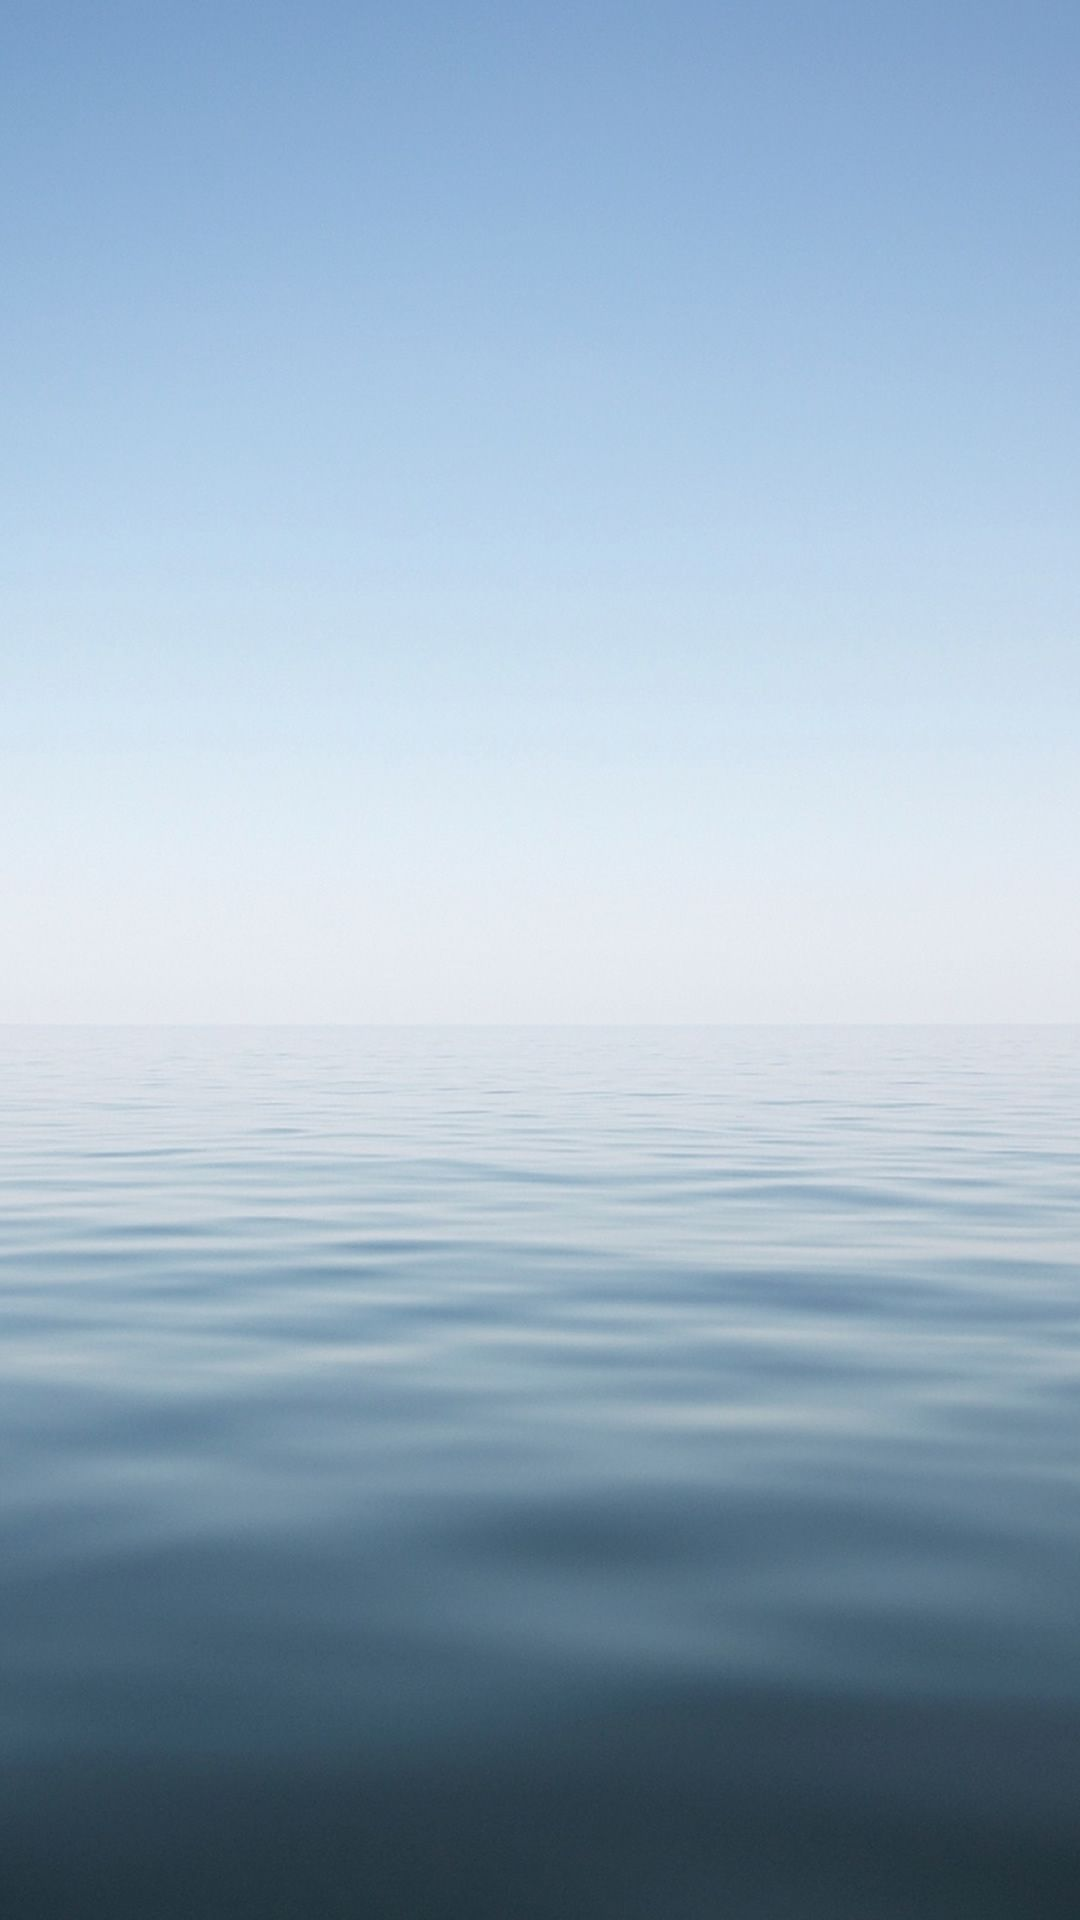 Wallpaper iphone minimal - Clear Minimal Ocean Water Surface Landscape Iphone 6 Plus Wallpaper